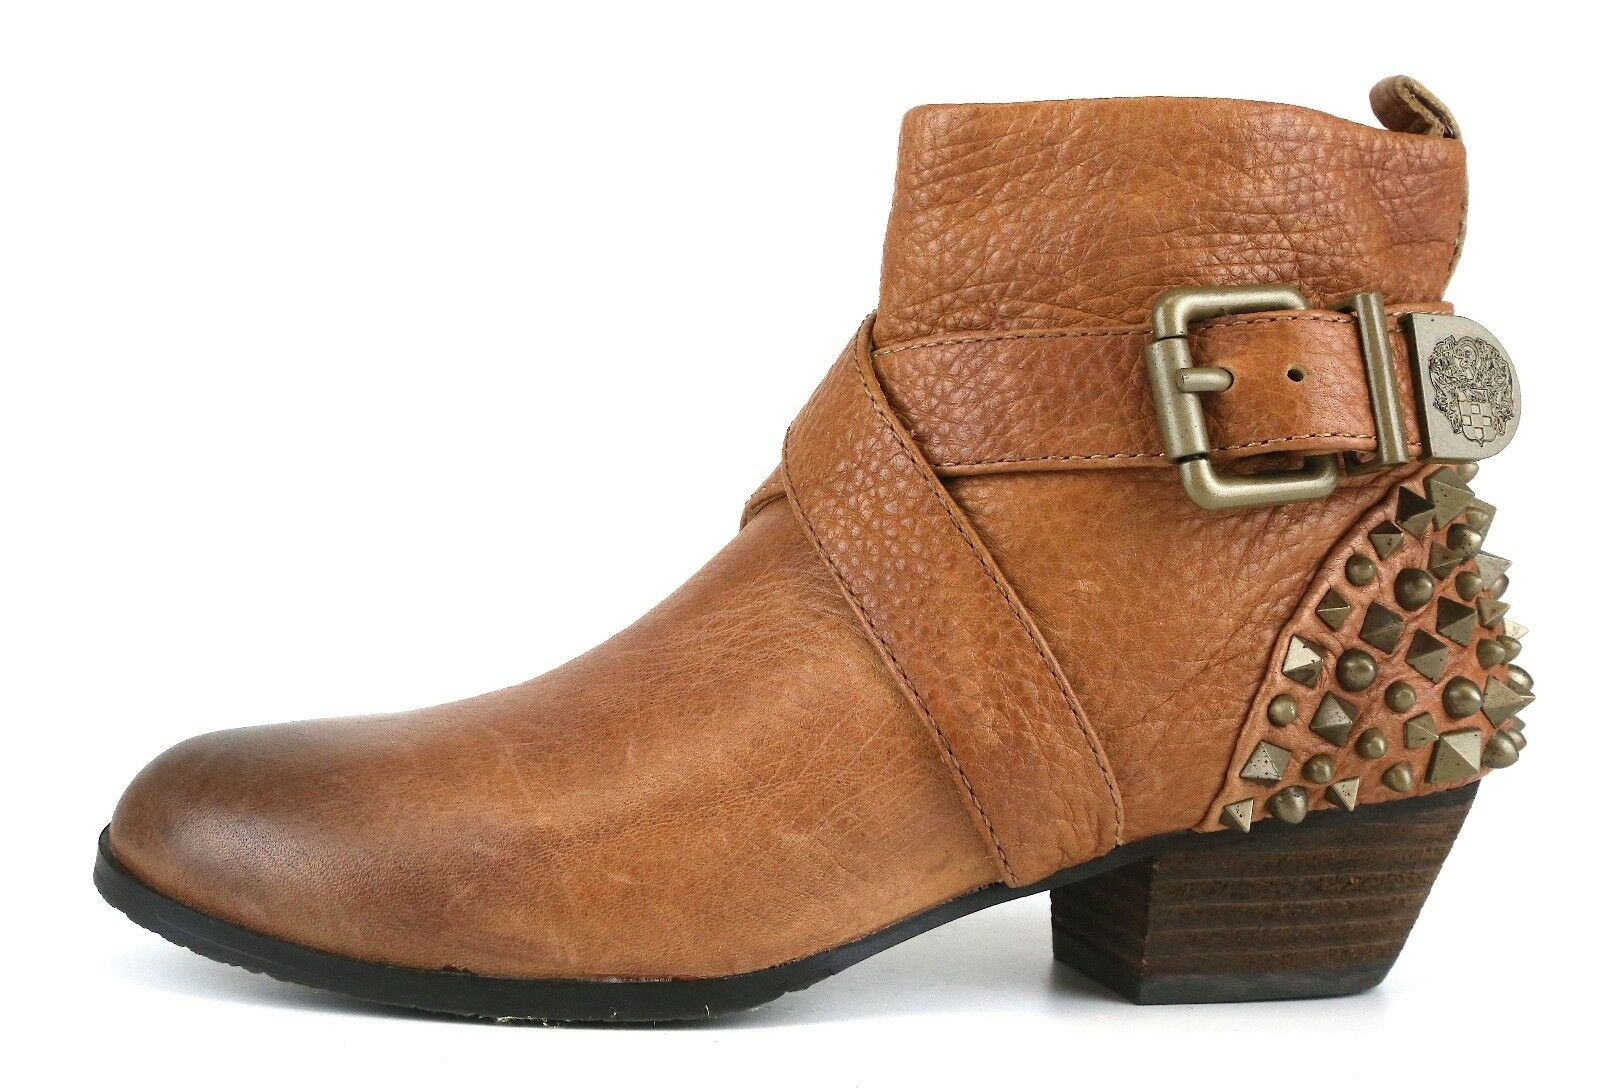 Vince Camuto Marcin Leather Bootie Brown Donna Sz 6 B 5493 *